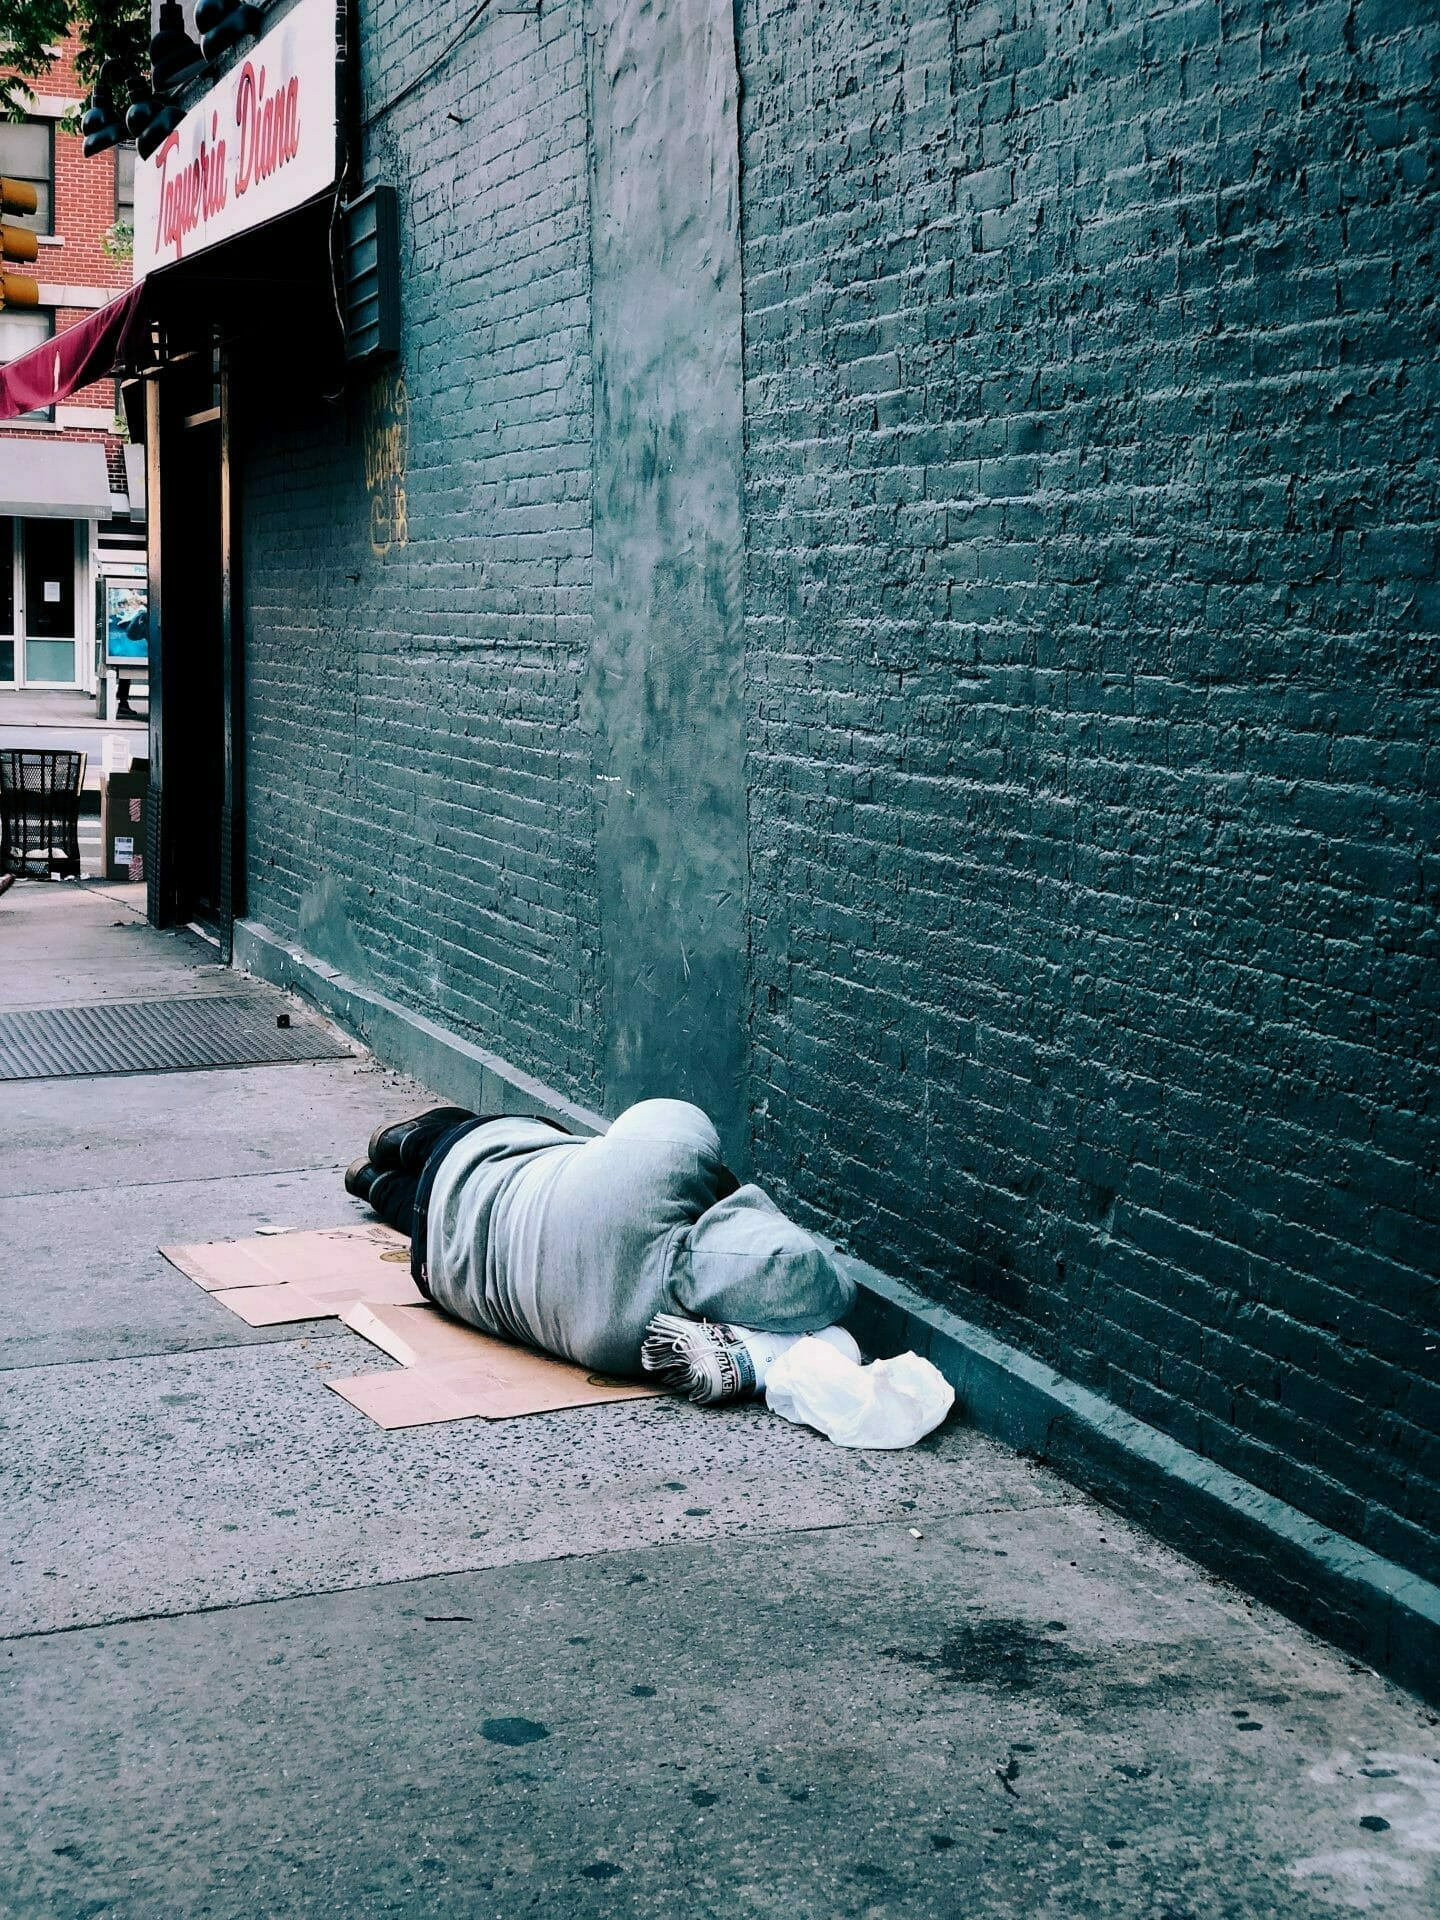 Picture of homeless person asleep on sidewalk for Real Estate News for Investors Podcast Episode #719